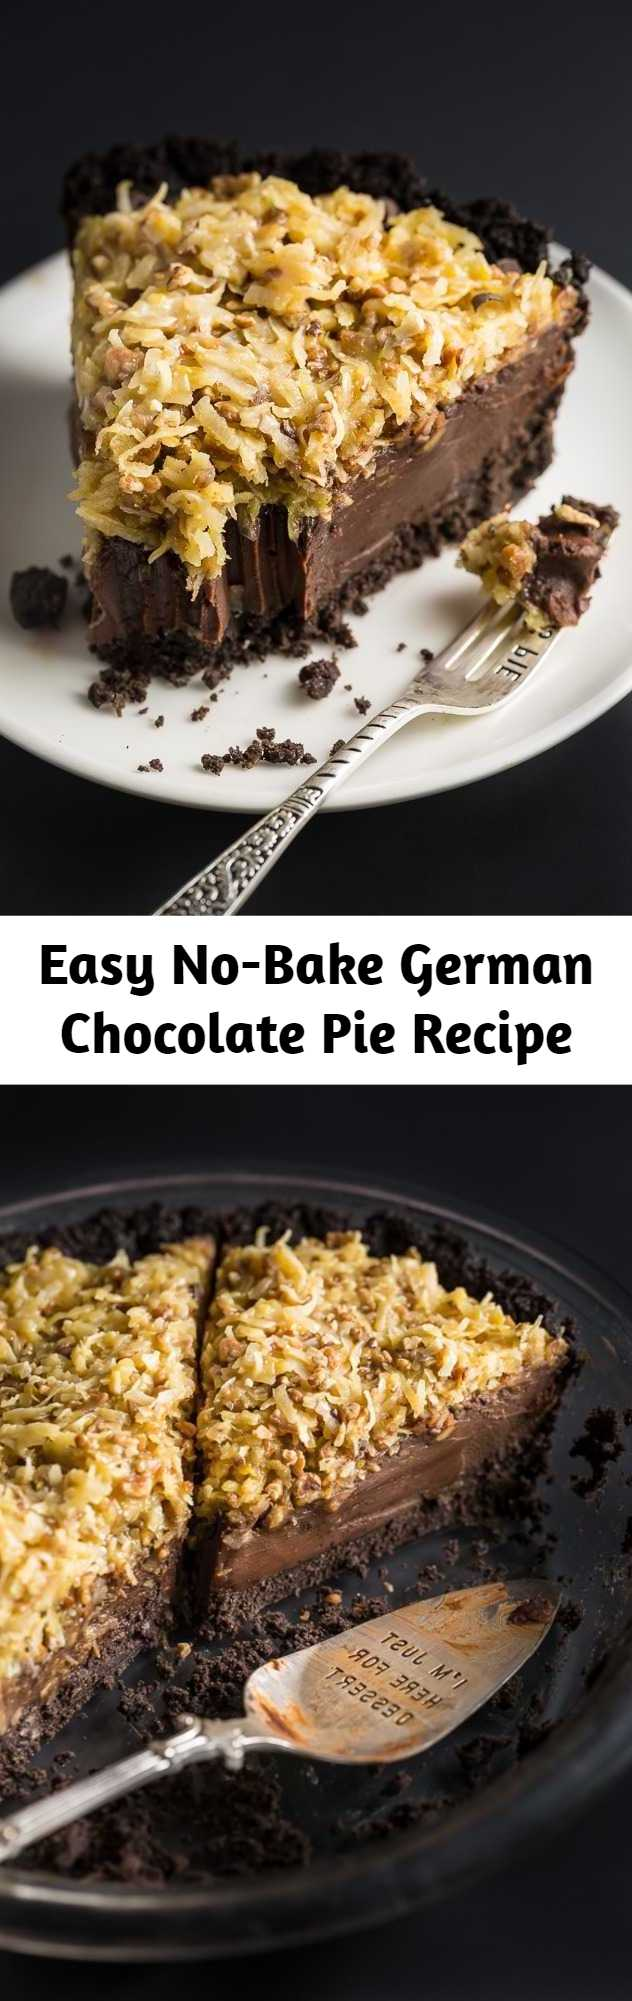 Easy No-Bake German Chocolate Pie Recipe - An easy and indulgent No-Bake German Chocolate Pie Recipe! Featuring a chocolate cookie crust, decadent chocolate filling, and coconut pecan topping, this sinfully sweet pie is always a hit! Perfect for those days it's too hot to bake!